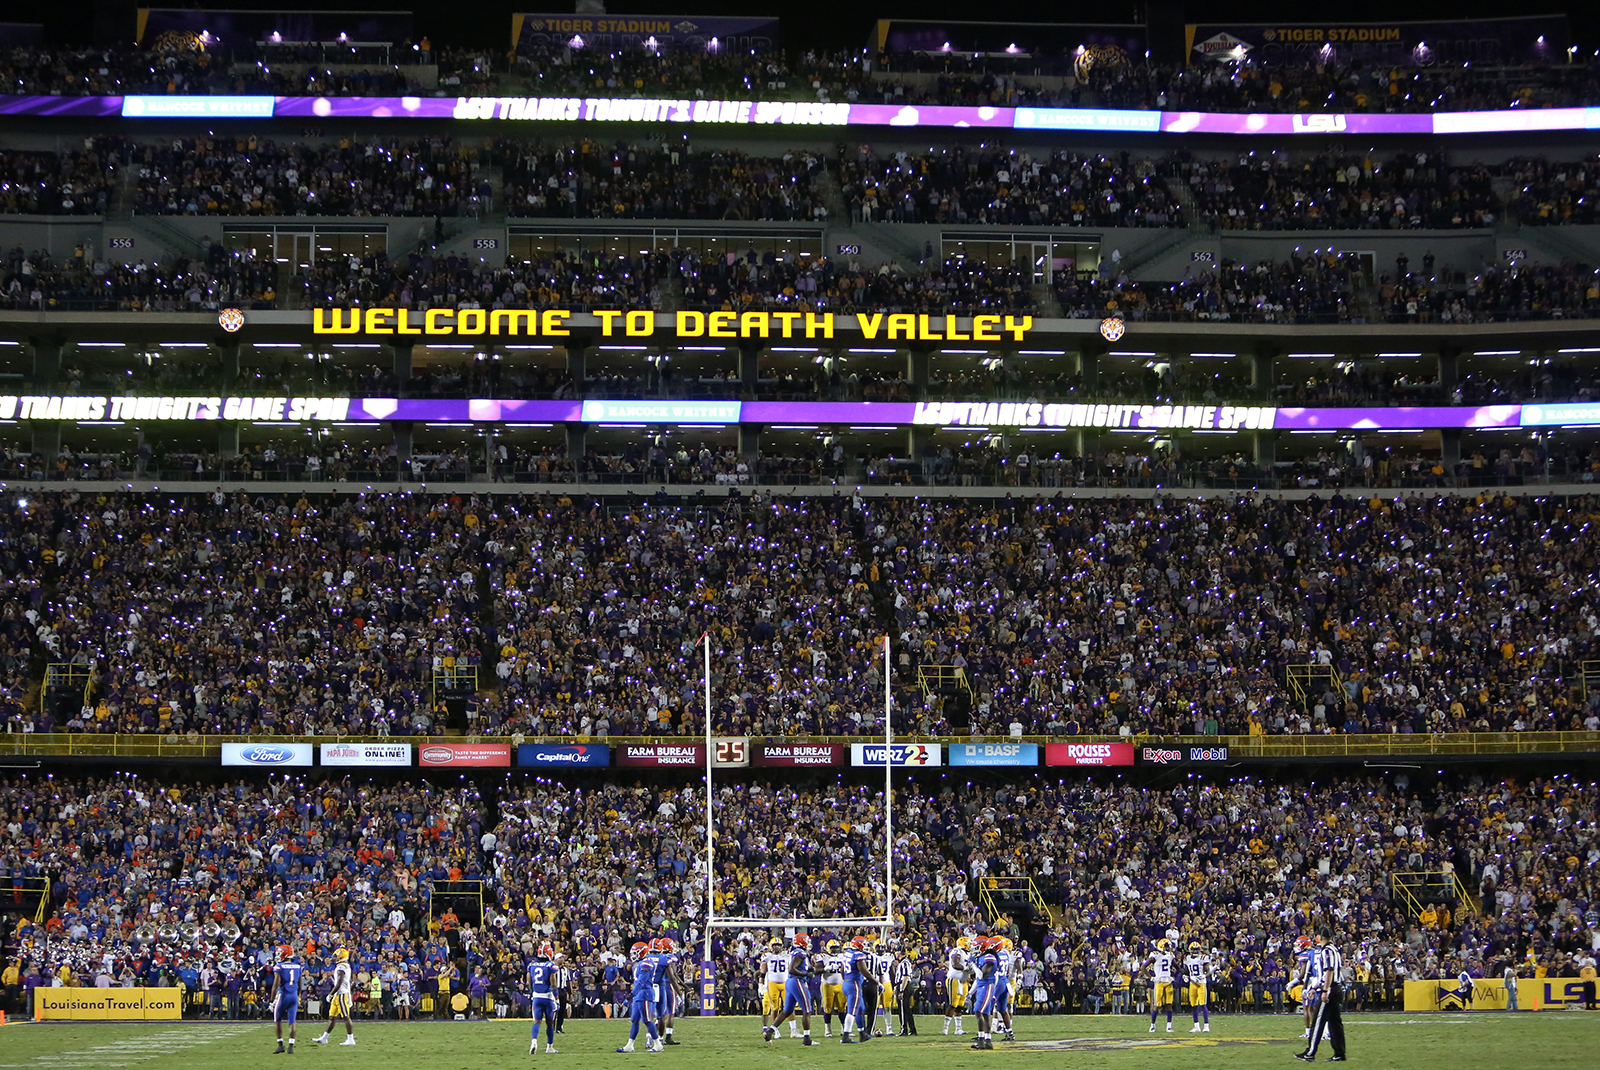 In this October 12, 2019 file photo, LSU fans are seeing during a game against the Florida Gators at Tiger Stadium in Baton Rouge, Louisiana.